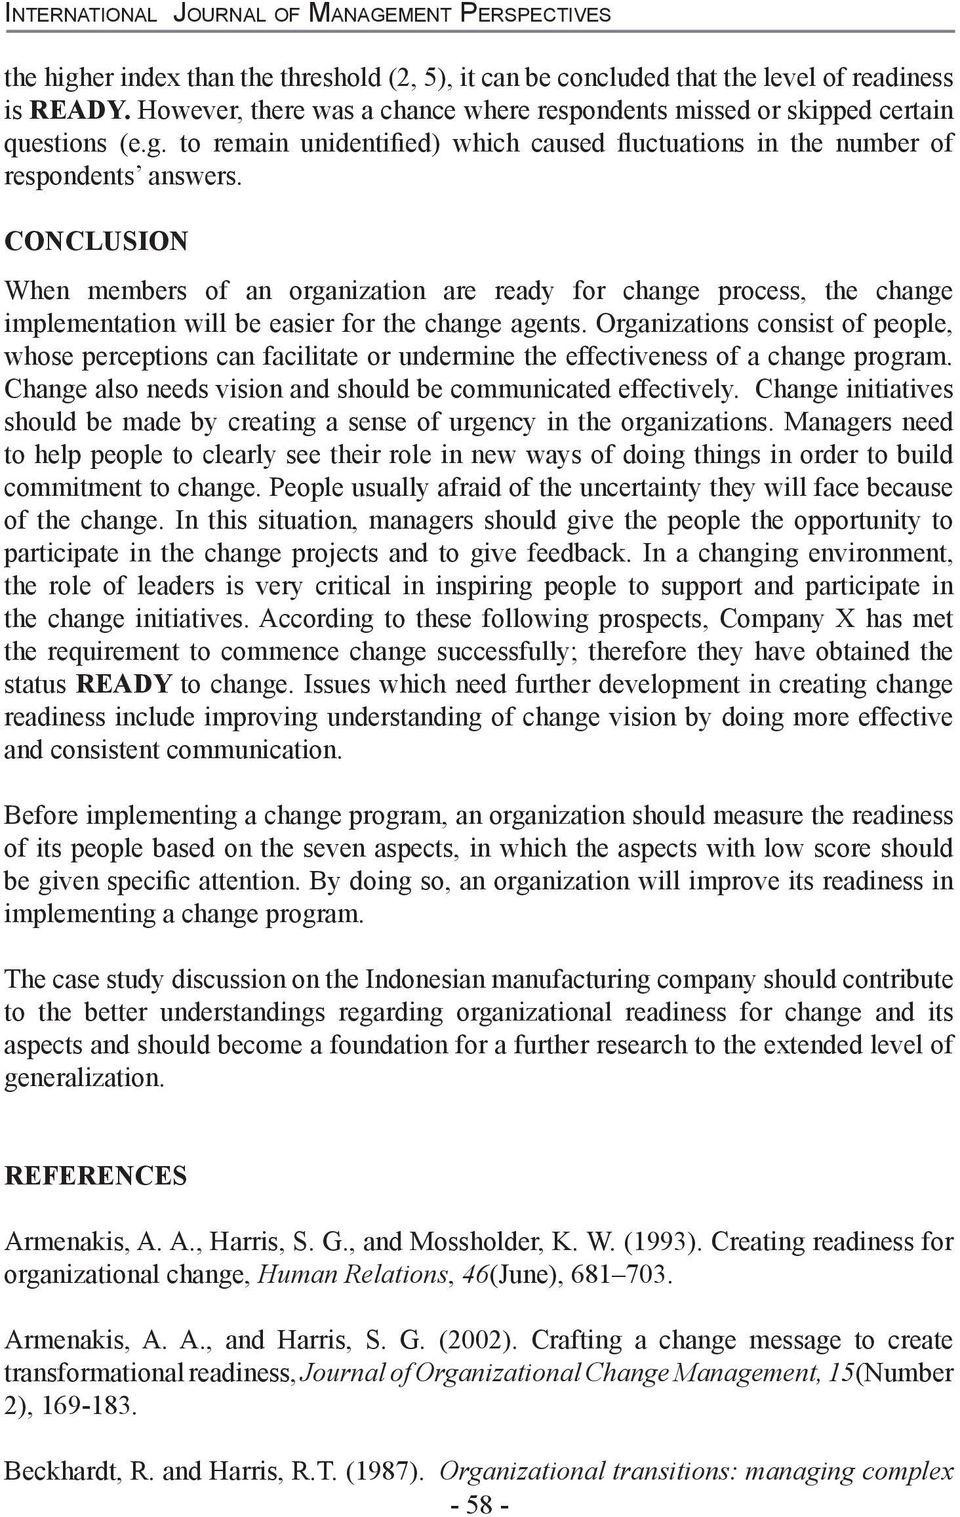 Organizational Readiness for Change: A Case Study on Change